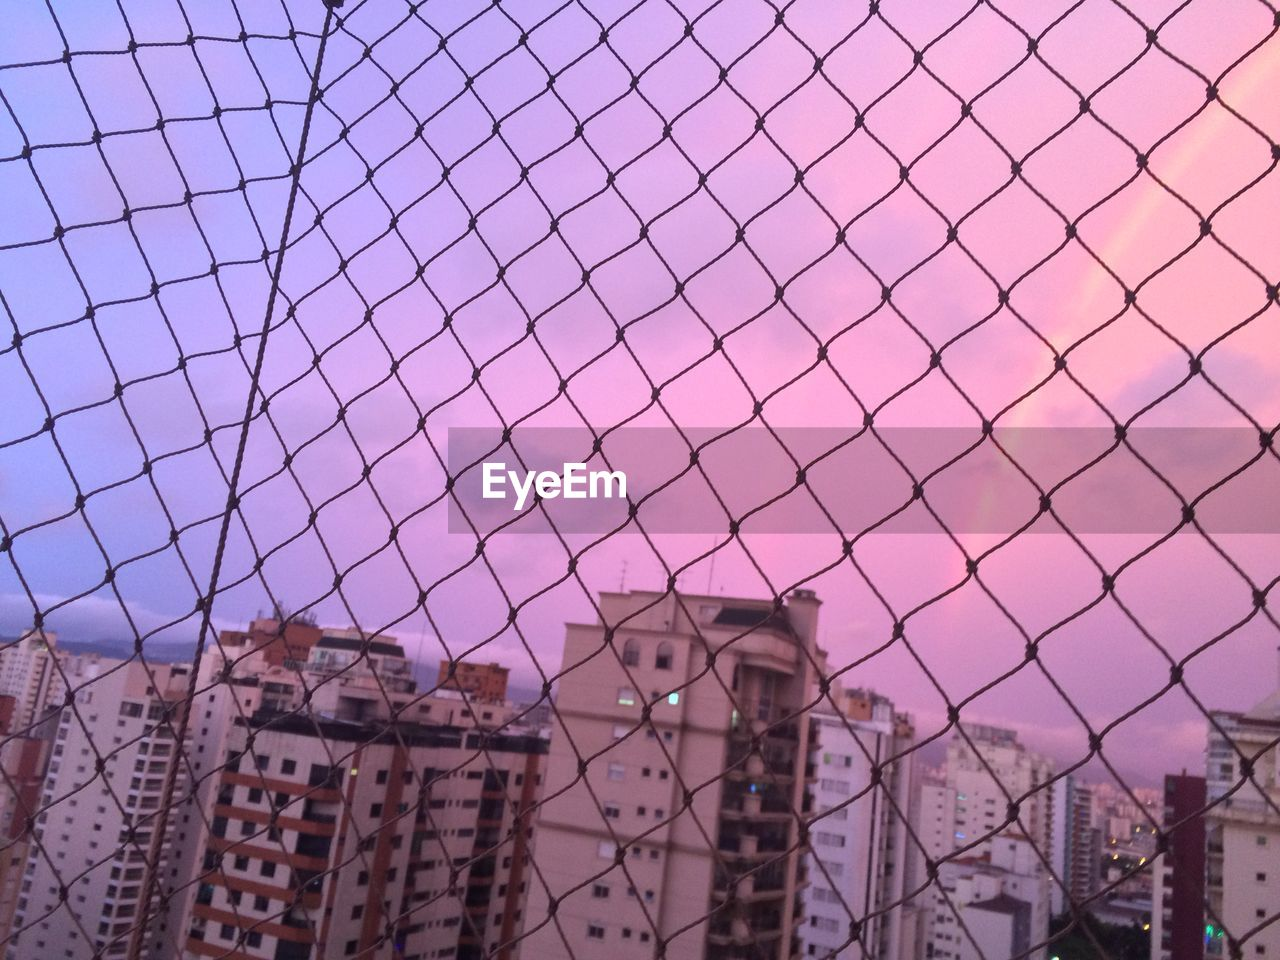 Buildings in city seen through chainlink fence during sunset